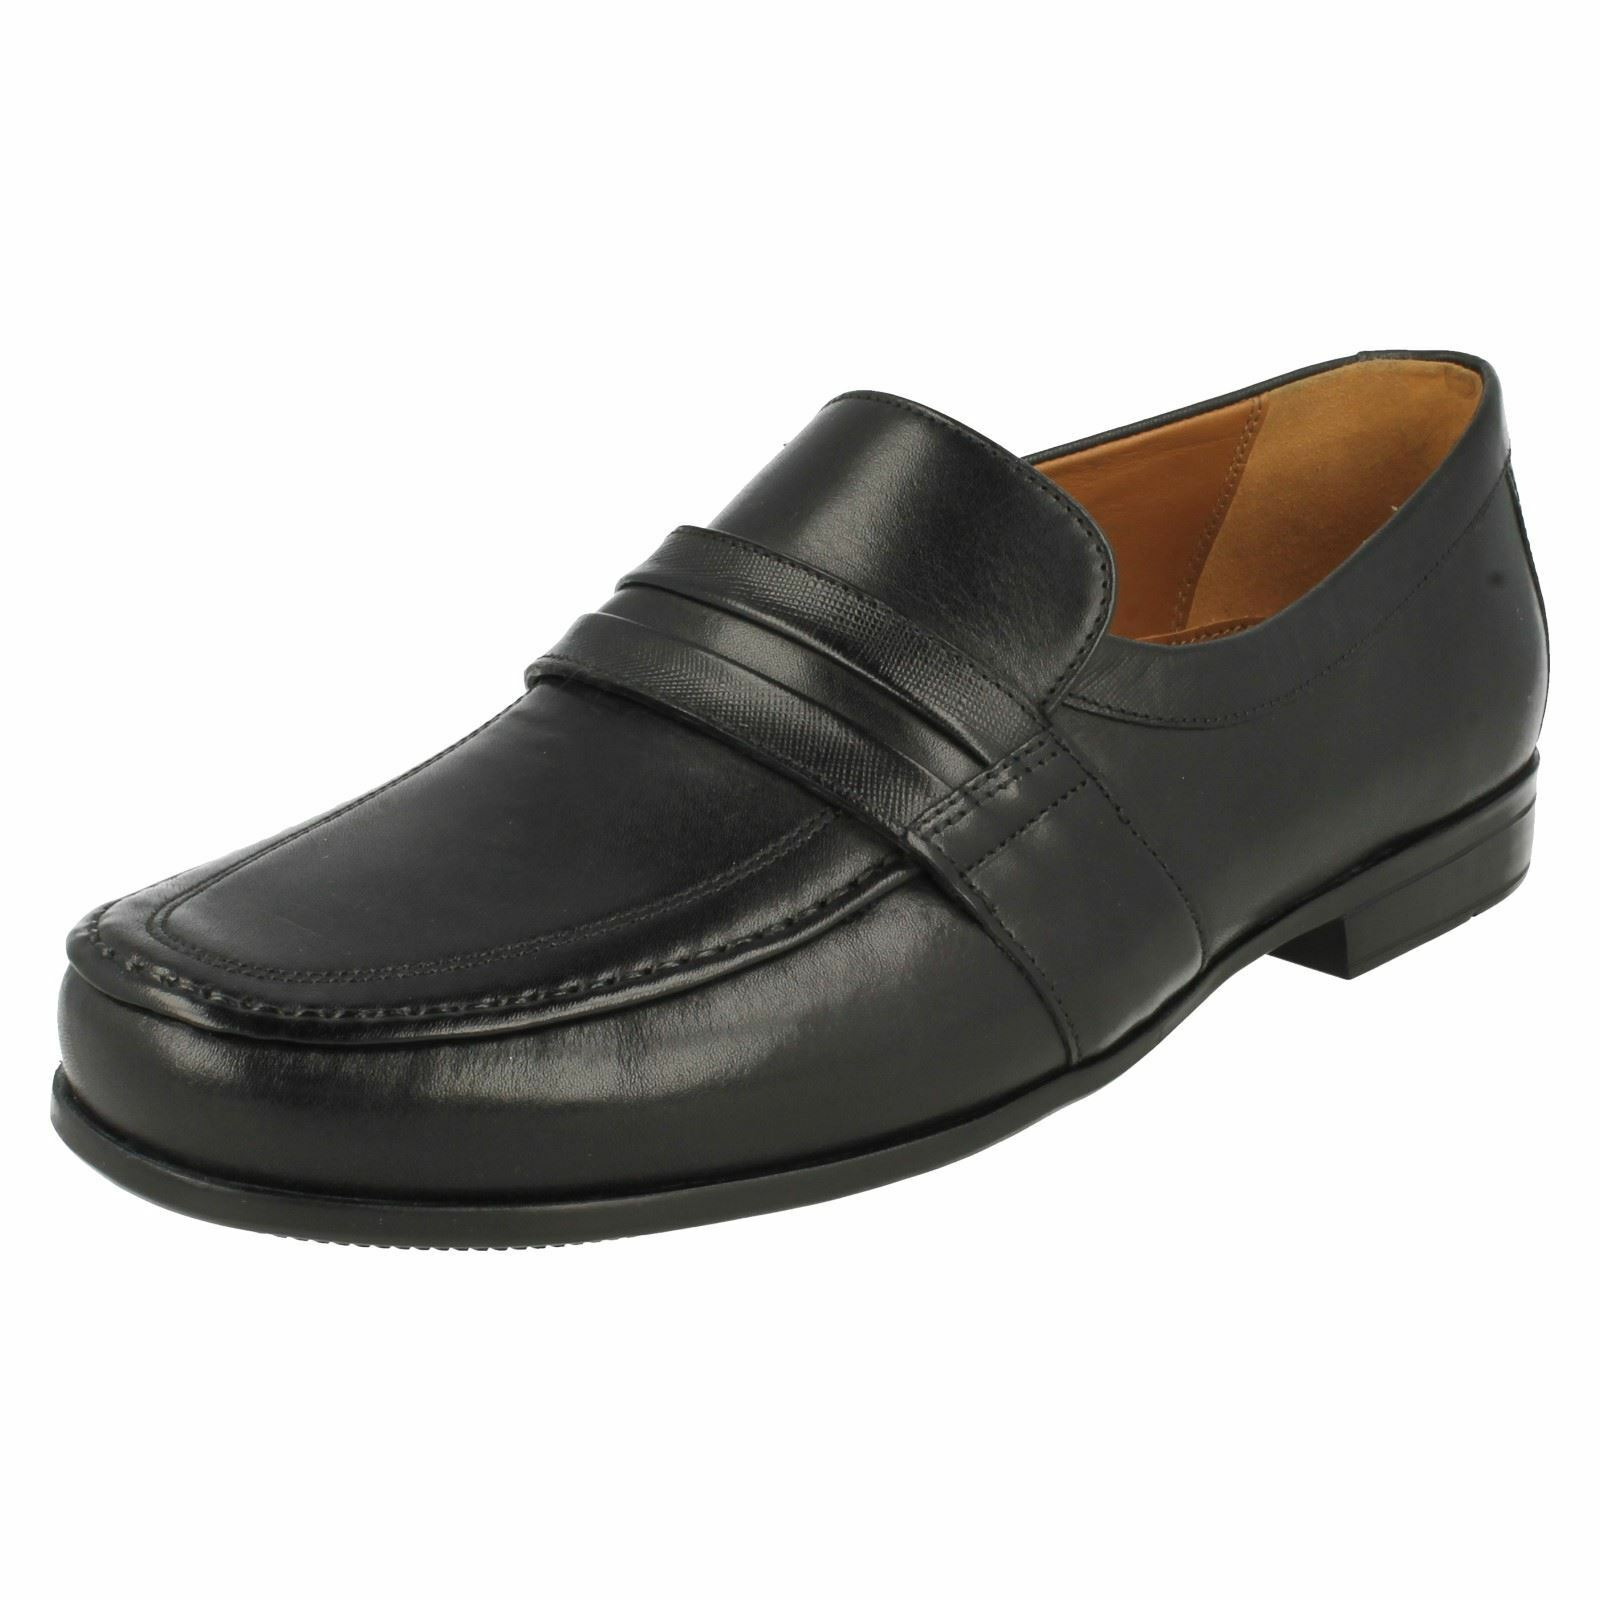 Clerchen Aston Claude On Slip Smart herren 62c42oxjy9891